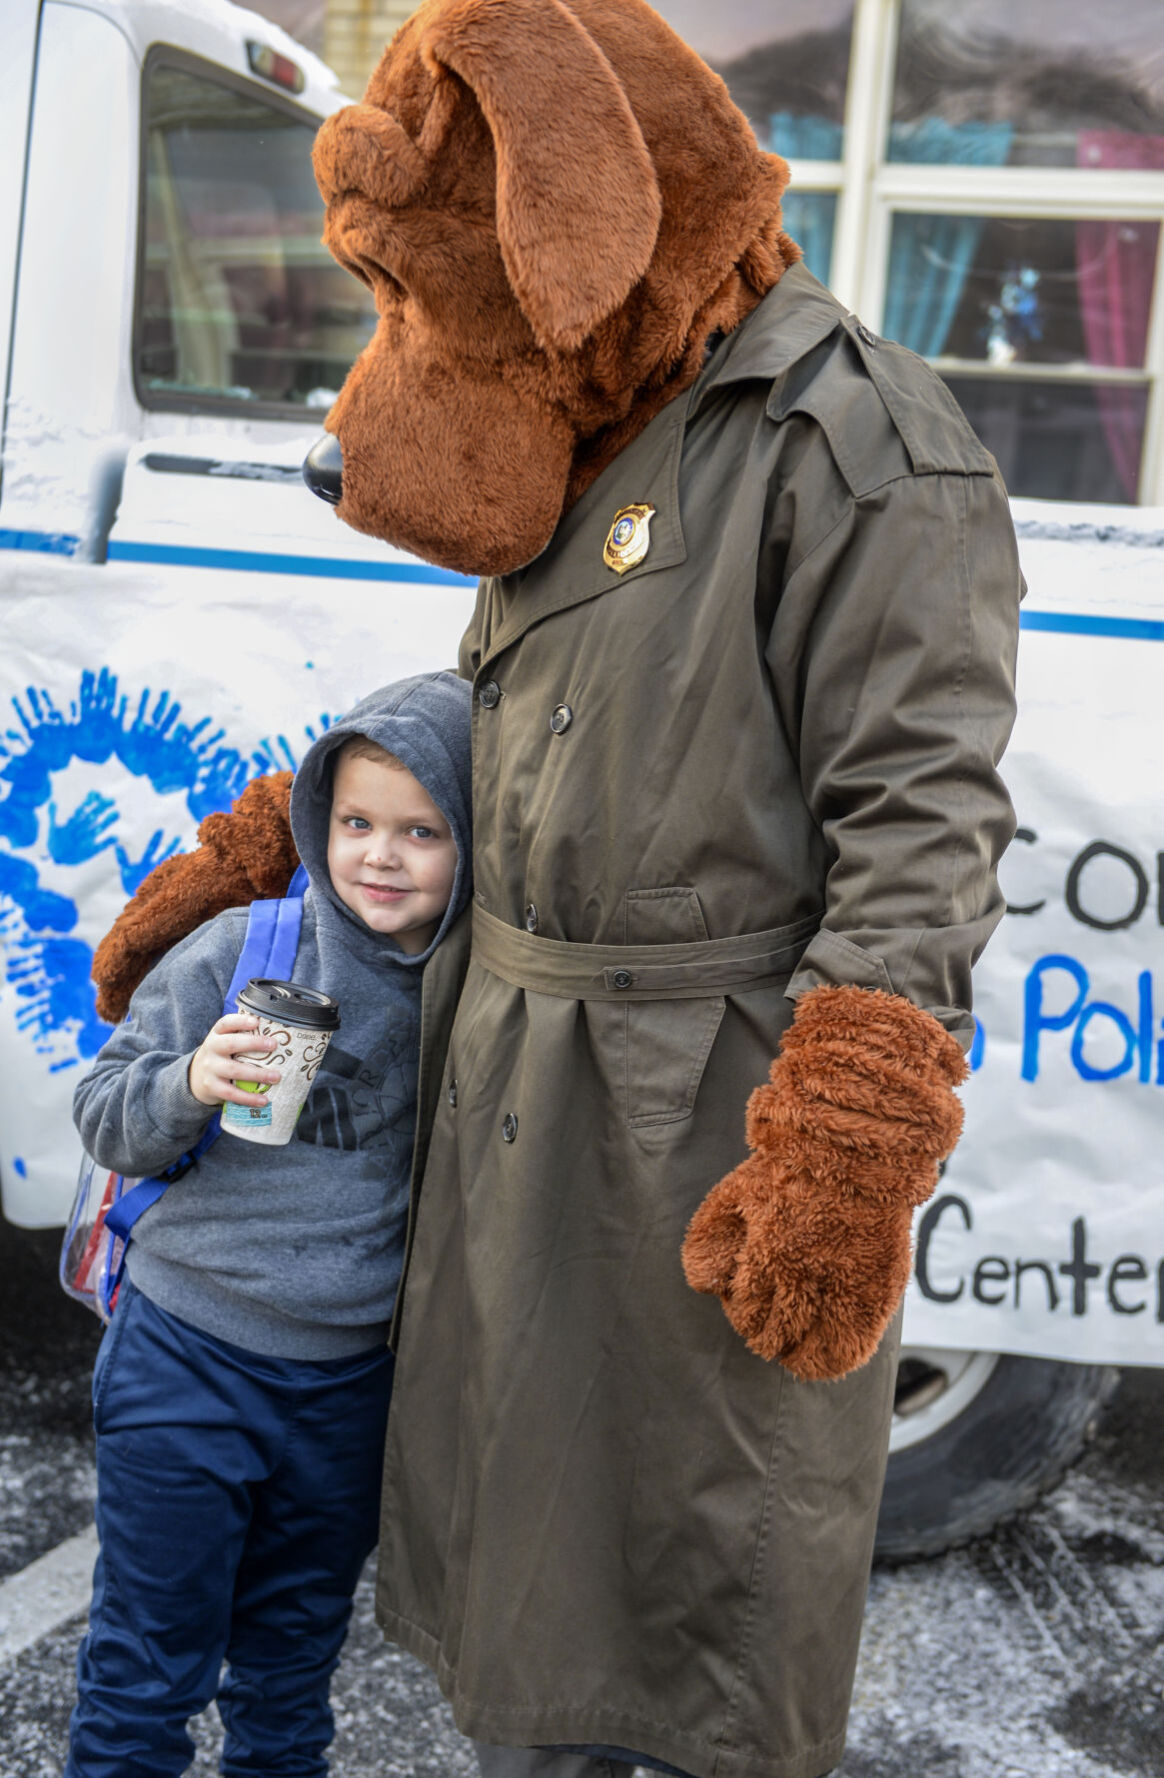 Police Hot Cocoa Giveaway